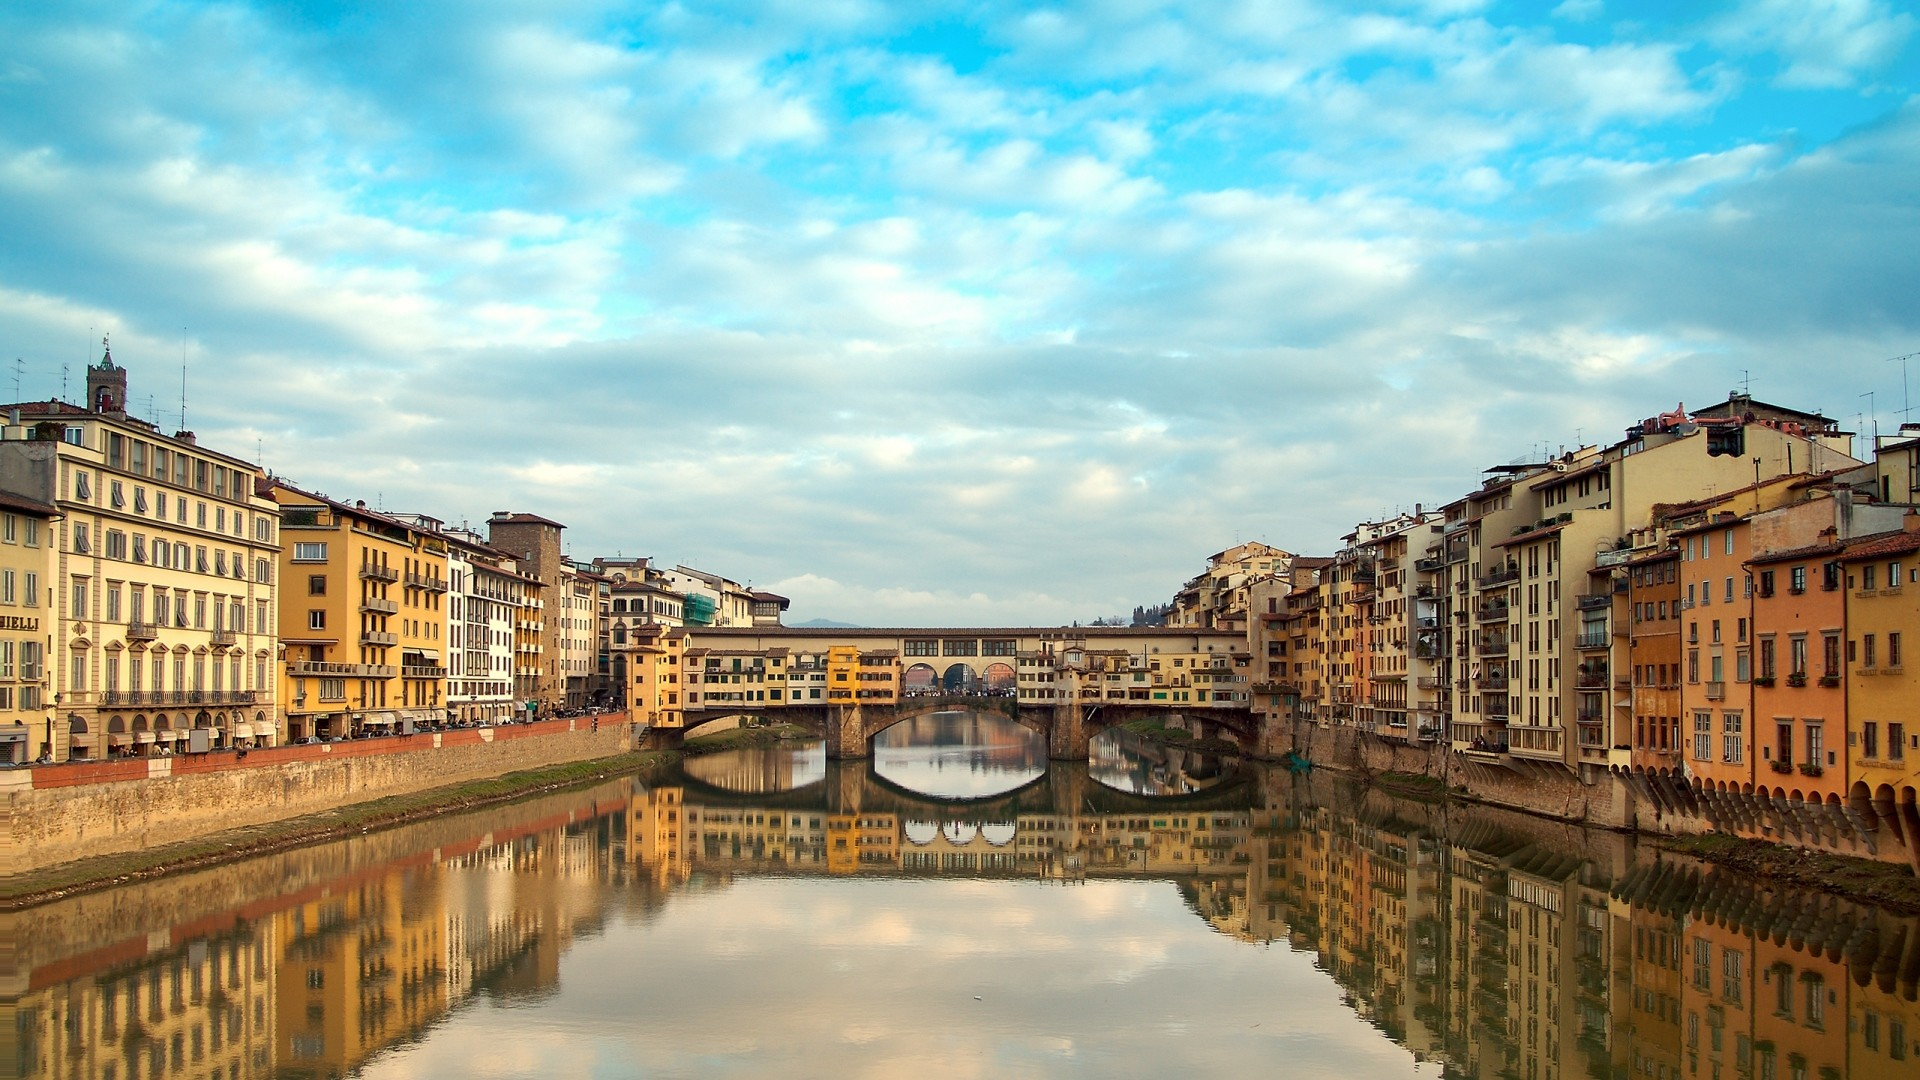 1920x1080 Full HD Wallpaper florence channel bridge reflection italy